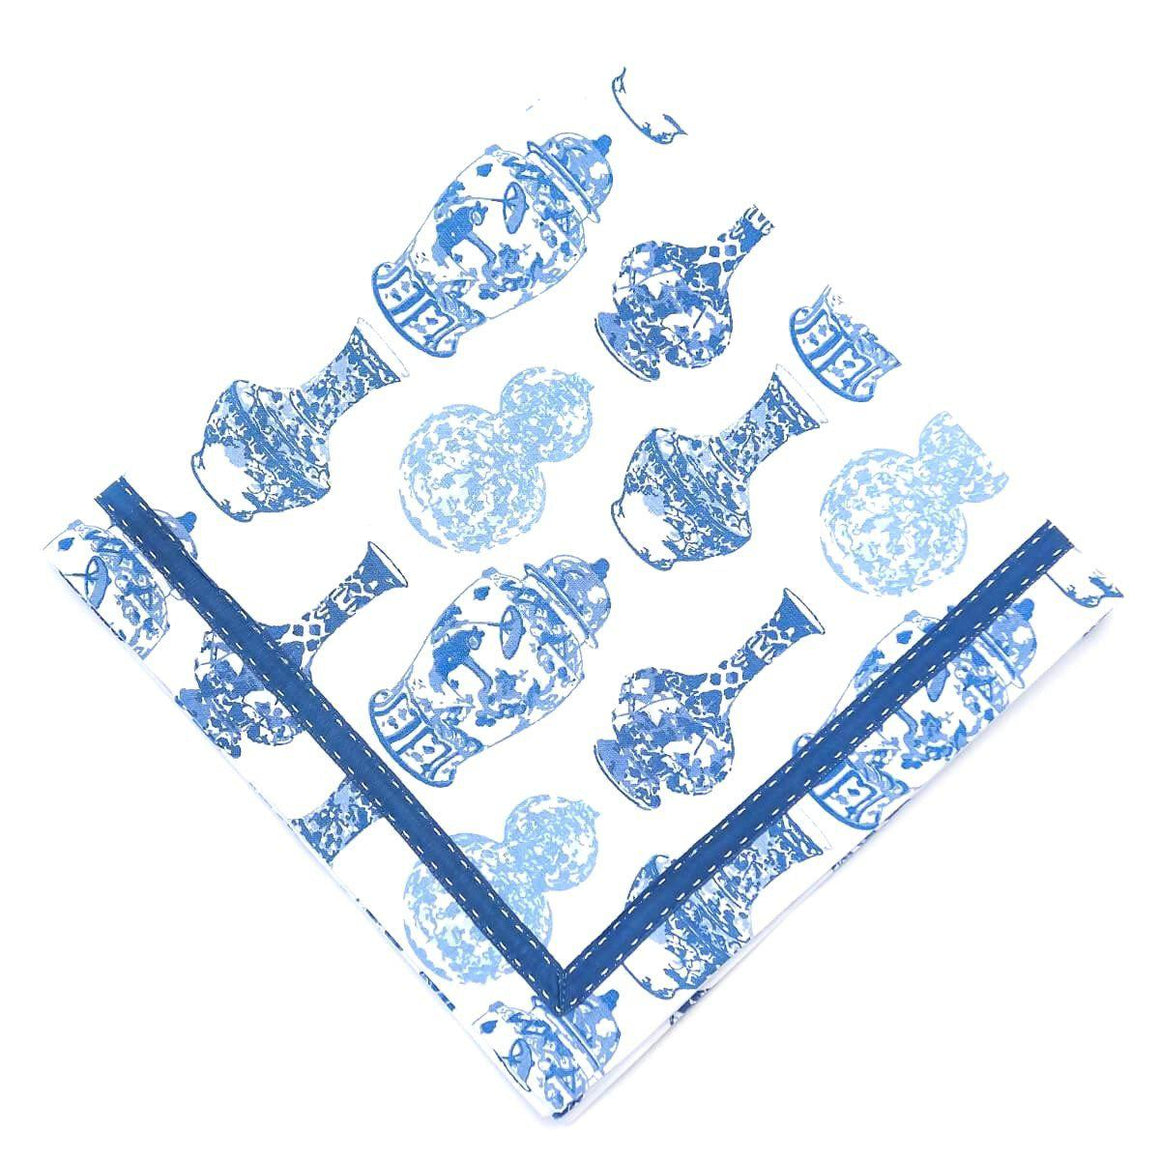 Blue Ginger Jar Napkins - The Preppy Bunny